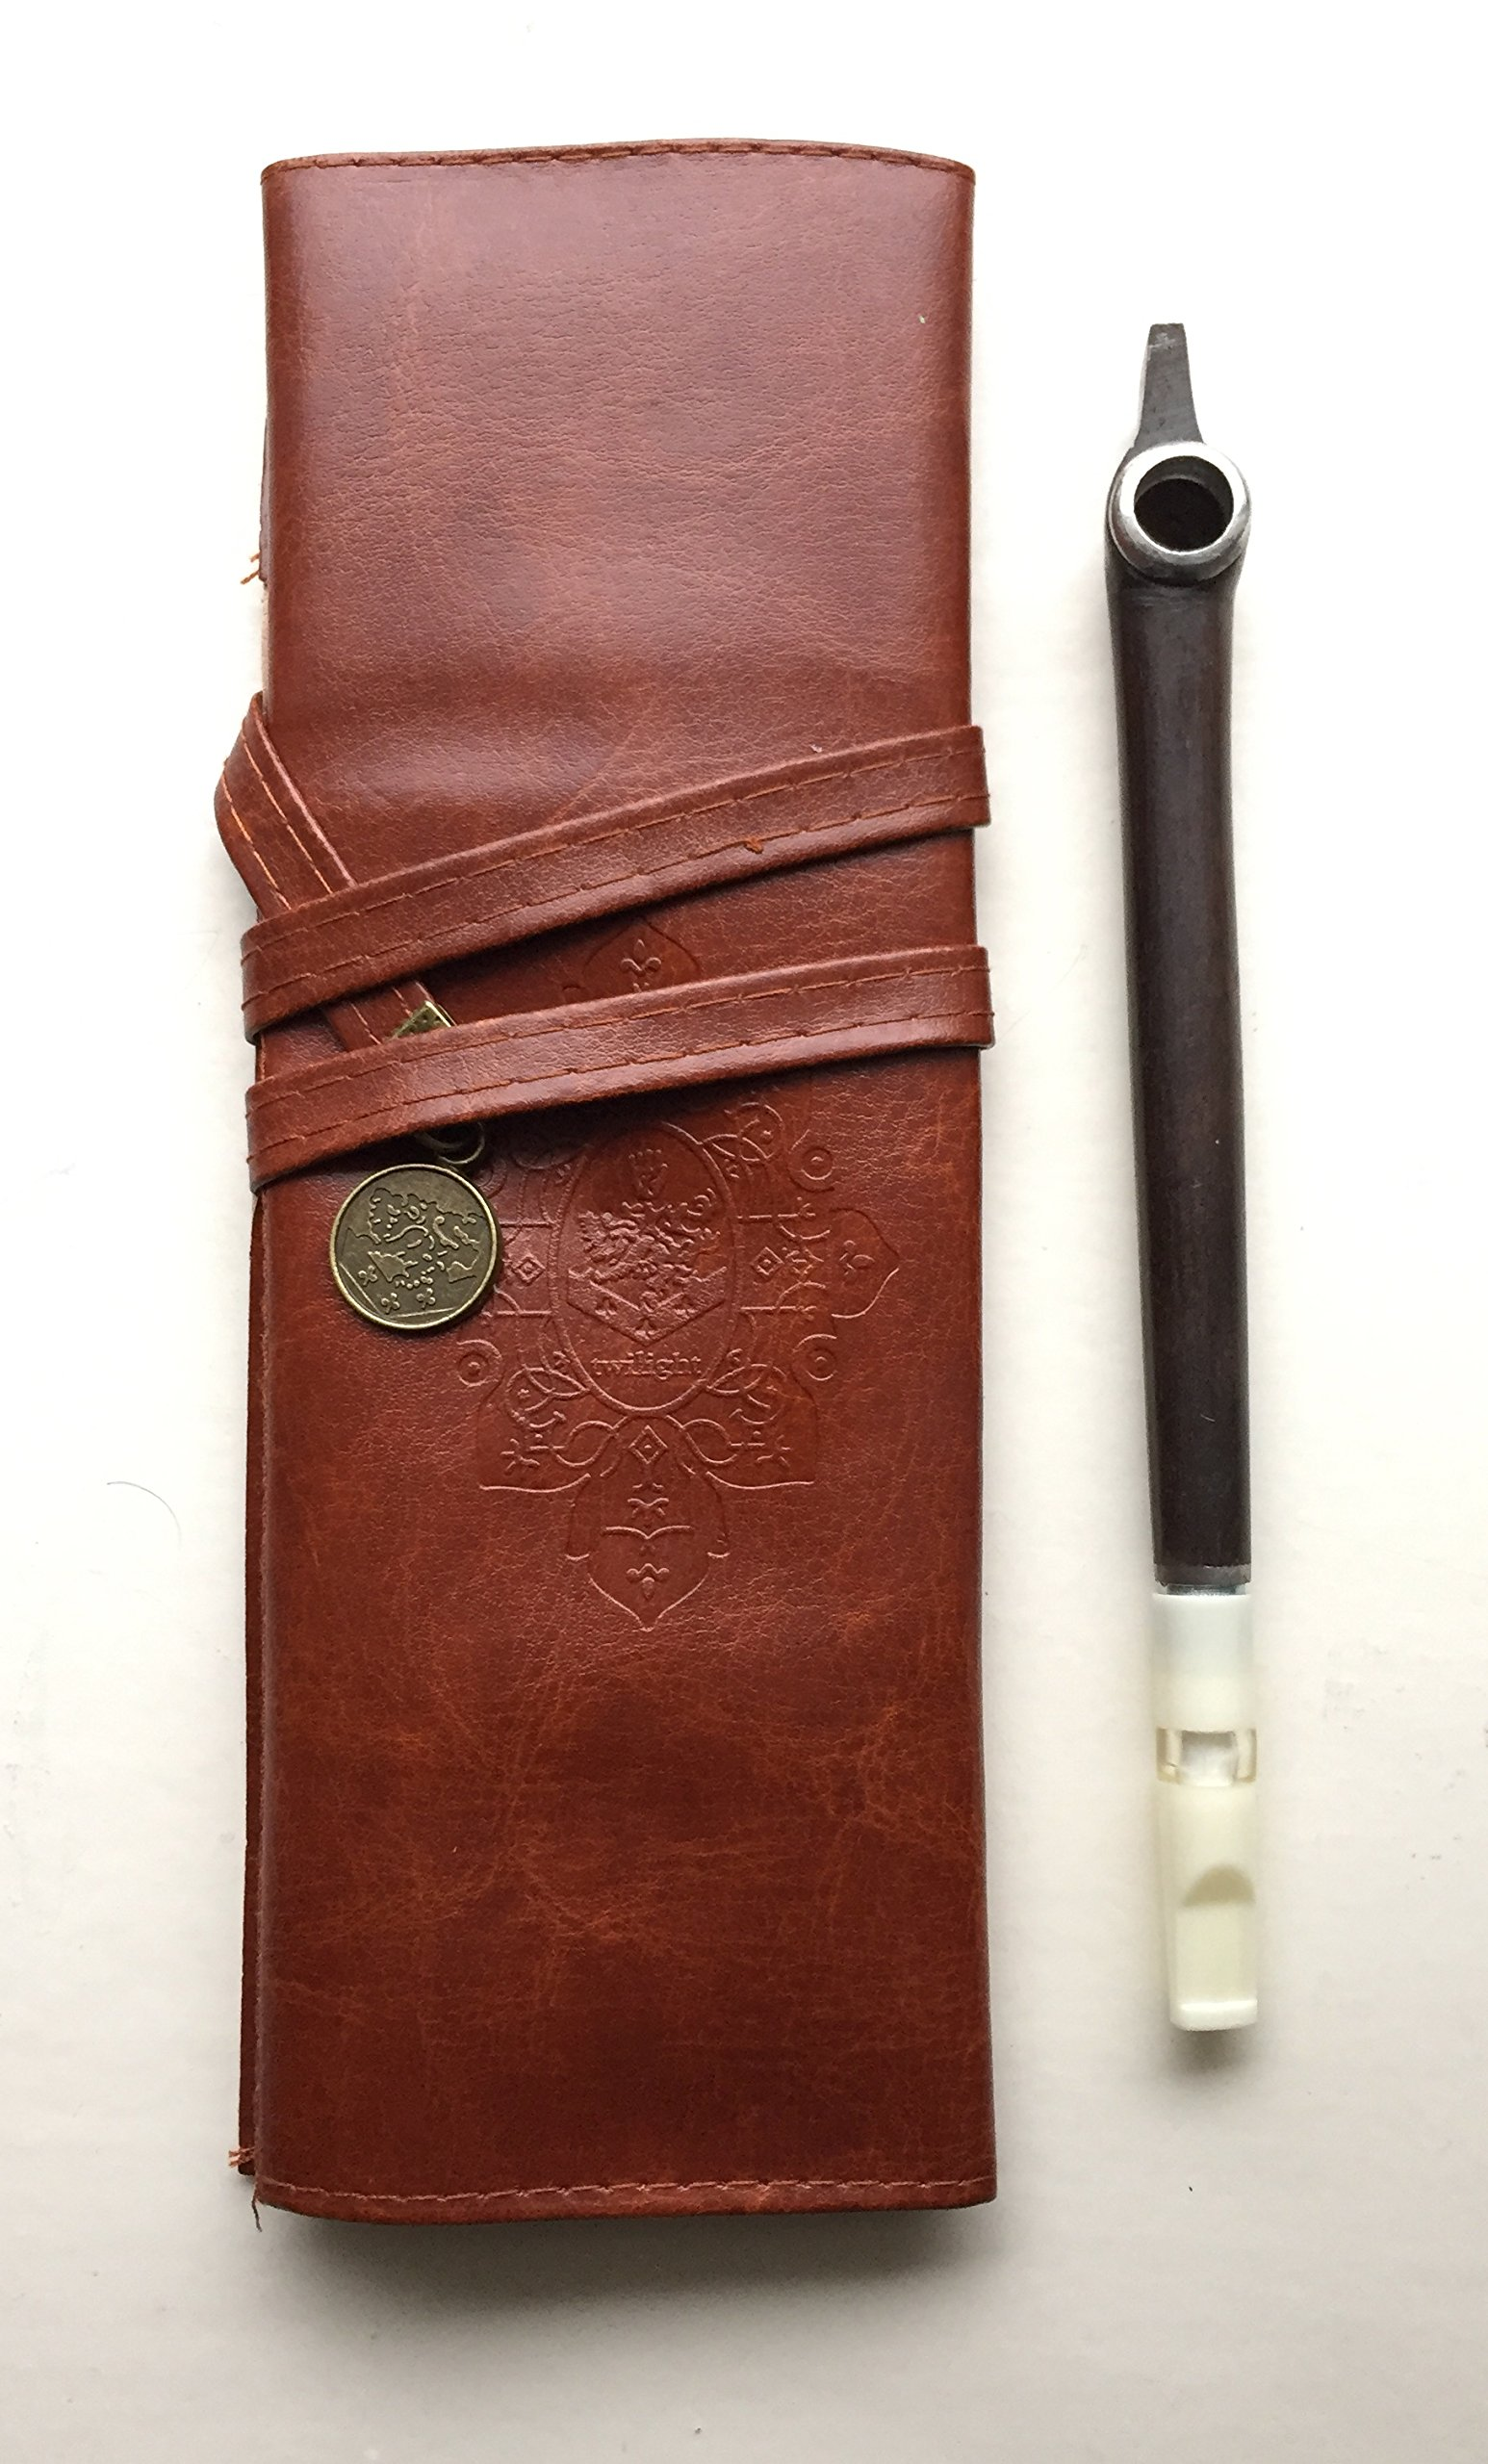 Wooden Medwakh Iranian/Arabian UAE Dokha wooden Pipe with Leather Brown Case ((Classic A))